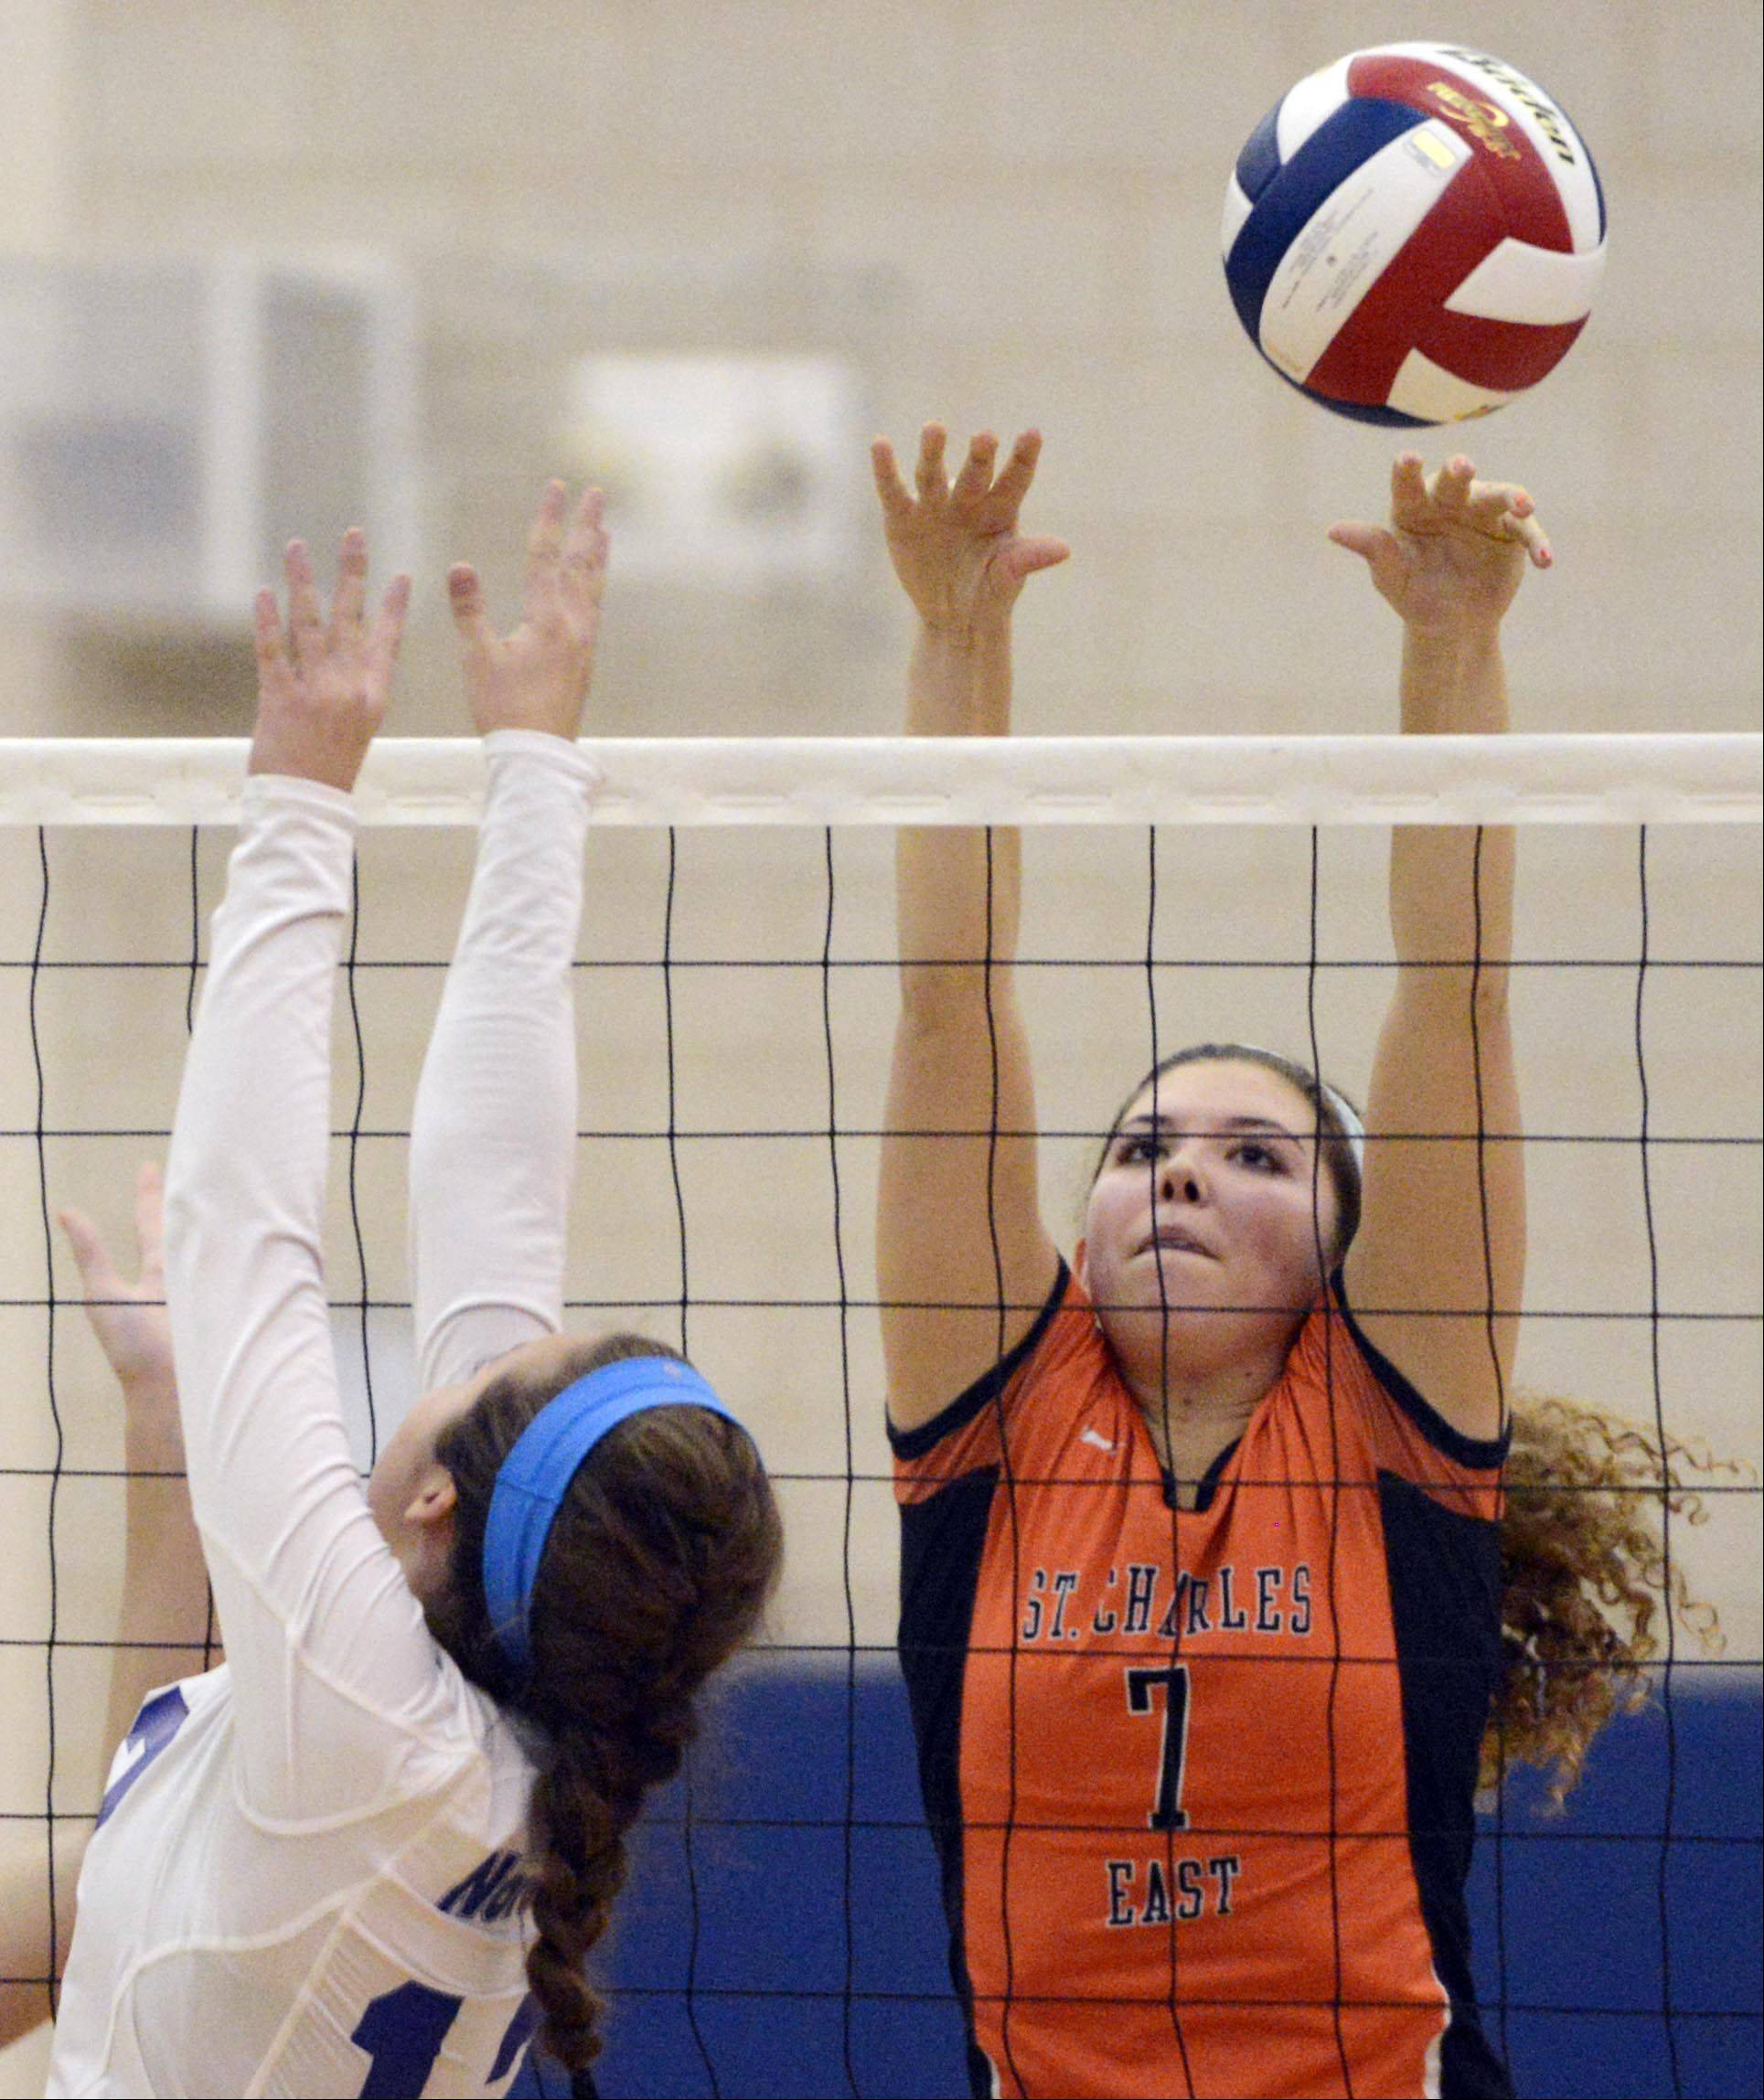 St. Charles East's Meagan Smith goes up to block a tip by St. Charles North's Sydney Wohlert Tuesday in Geneva.